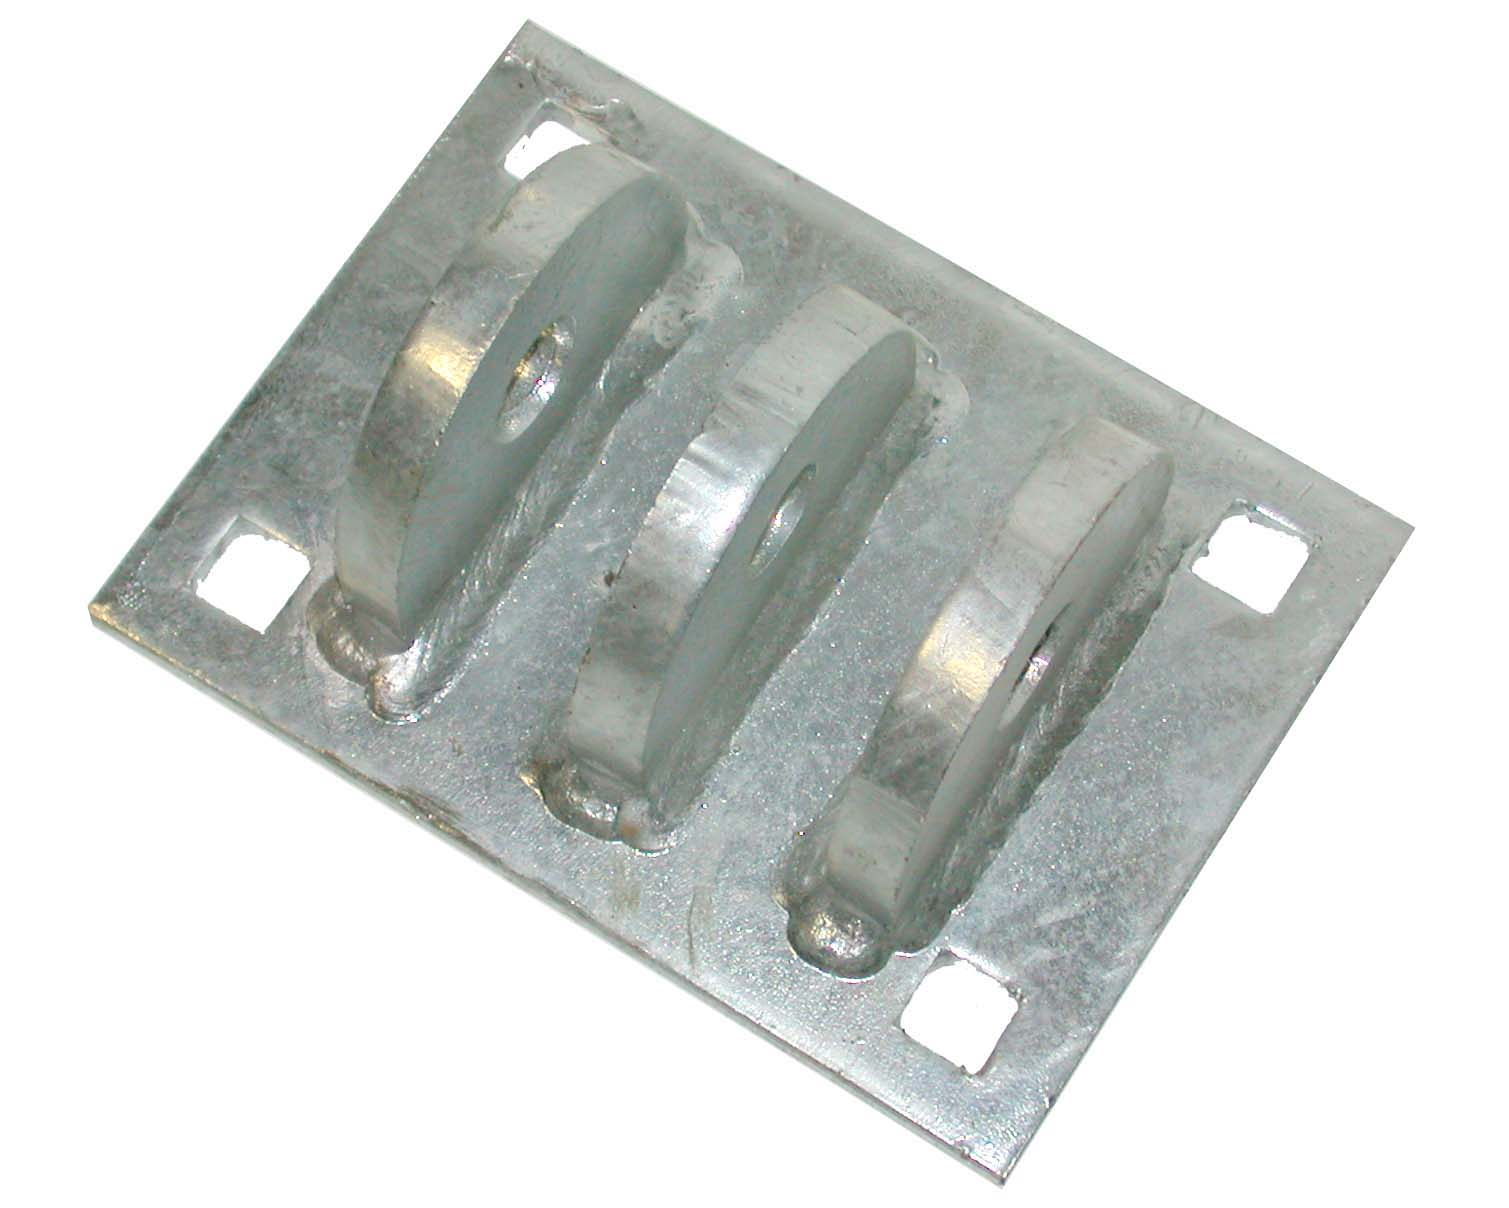 Dock Heavy Duty T-Female Connector DH-HDTF Galvanized